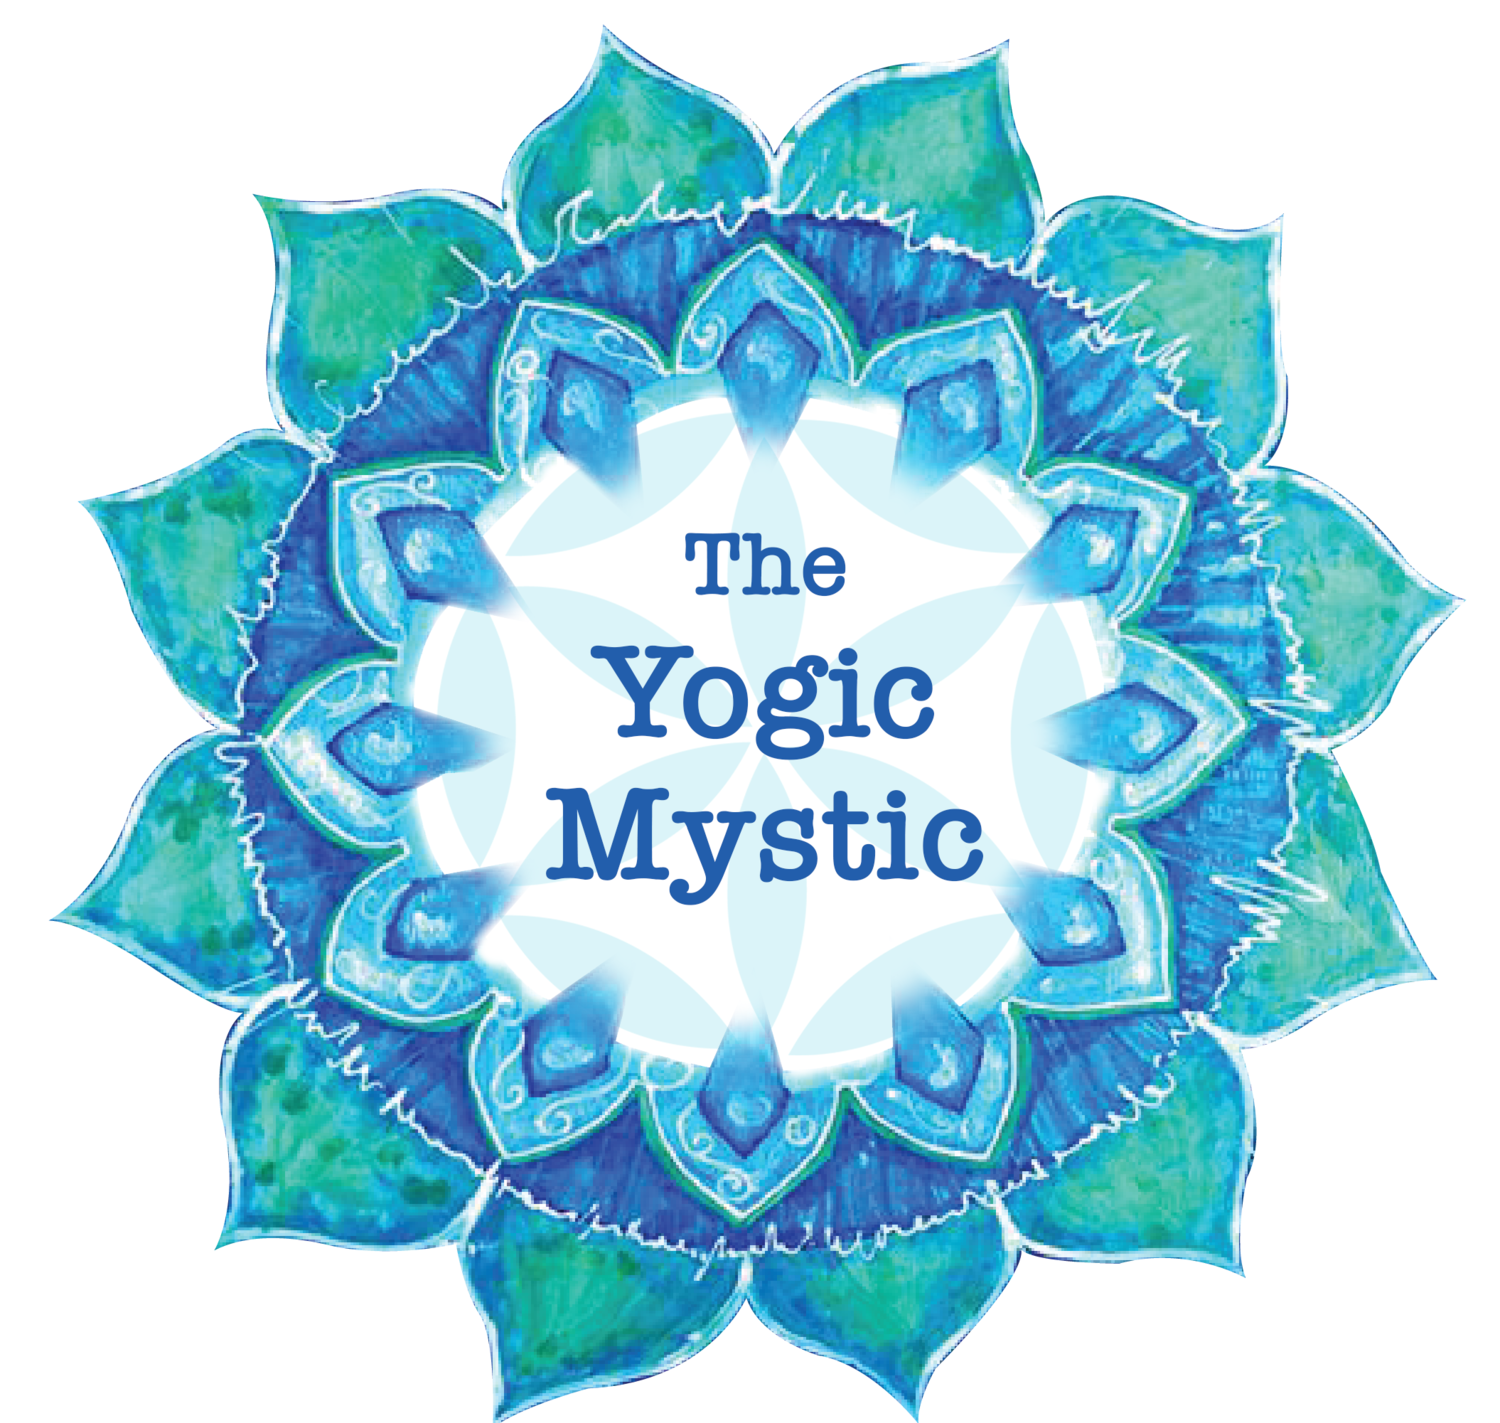 Jyotish Vedic Astrology & Card Cosmology Readings, Classes